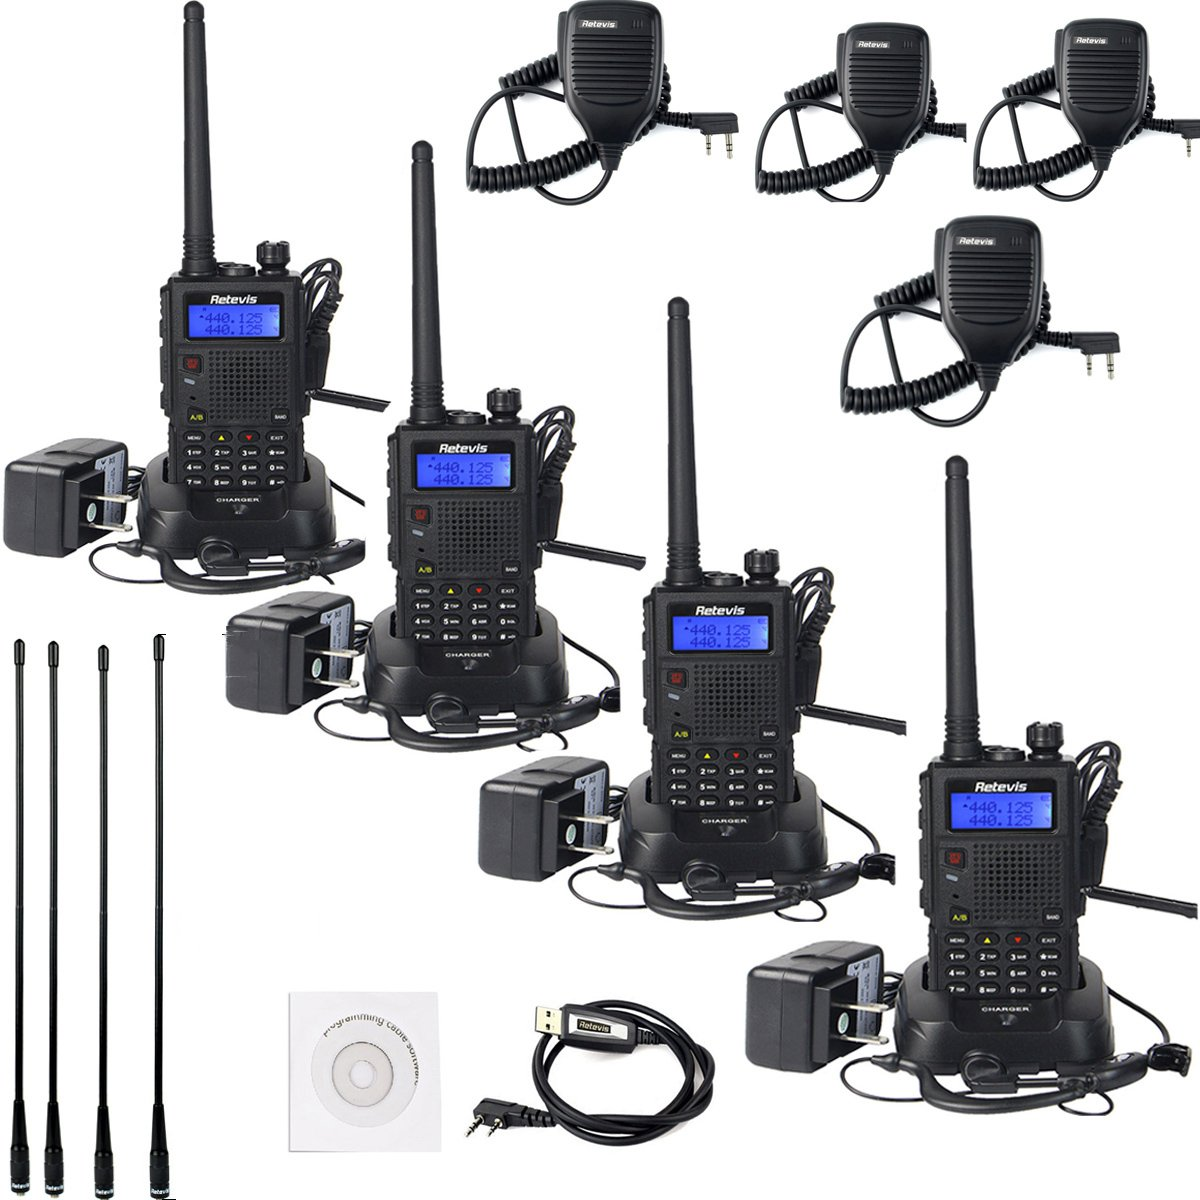 Retevis RT5 Walkie Talkies VHF/UHF 136-174/400-520MHz Dual Band Scan VOX FM Ham Radio (4 Pack) with Full Parts